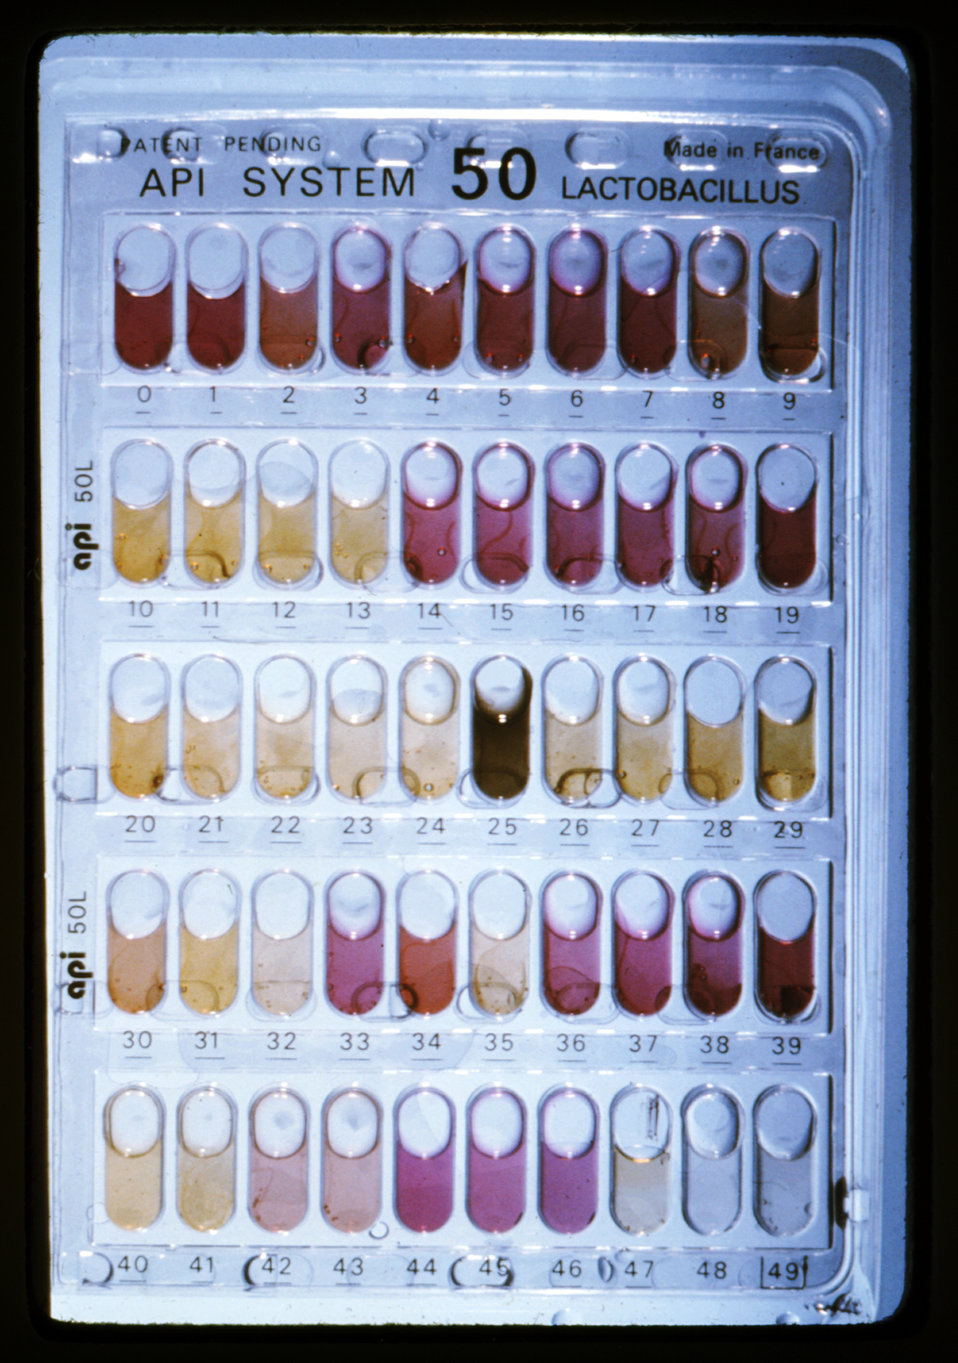 Using the API� system, here 50 wells have been inoculated with Clostridium ramosum.